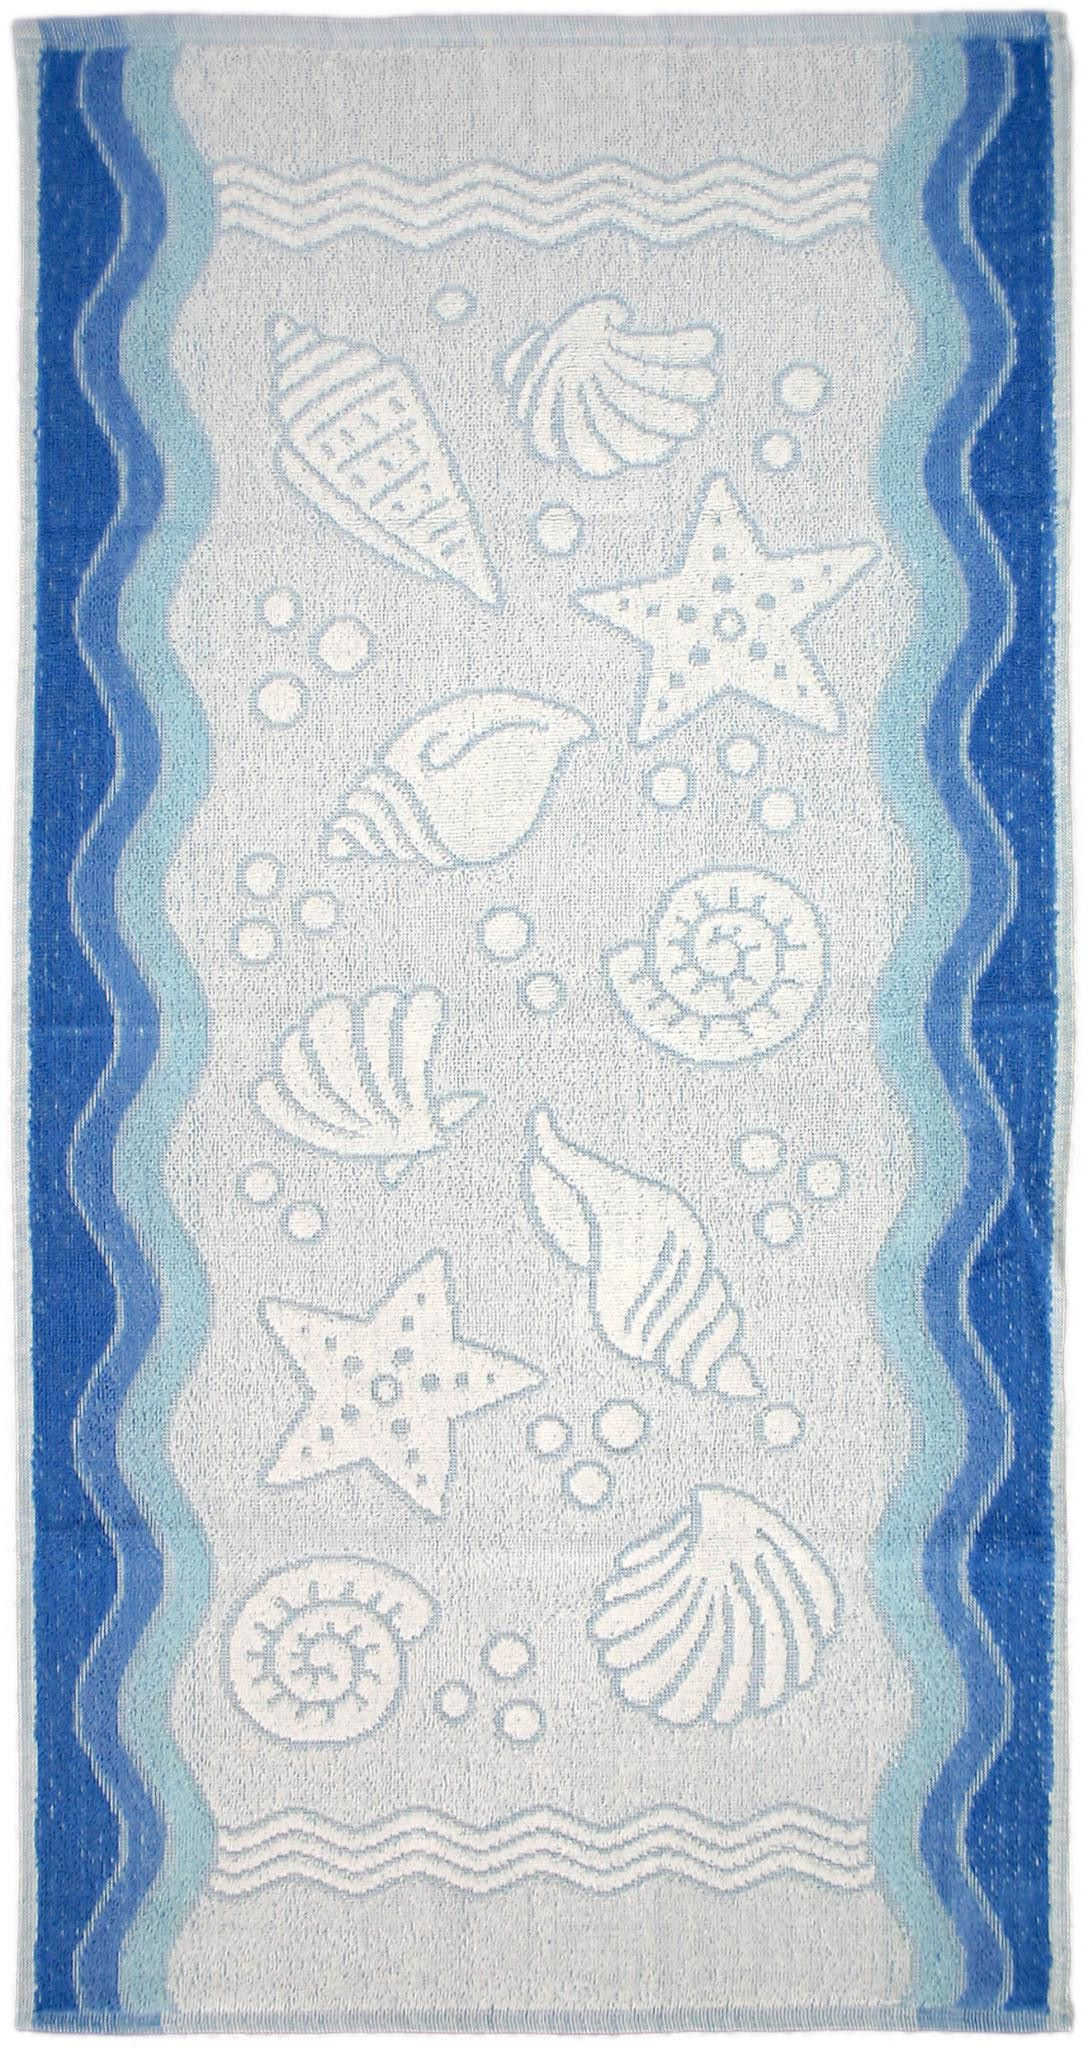 Ręcznik Flora Ocean - Niebieski - 40x60 cm - Everday Collection - Greno